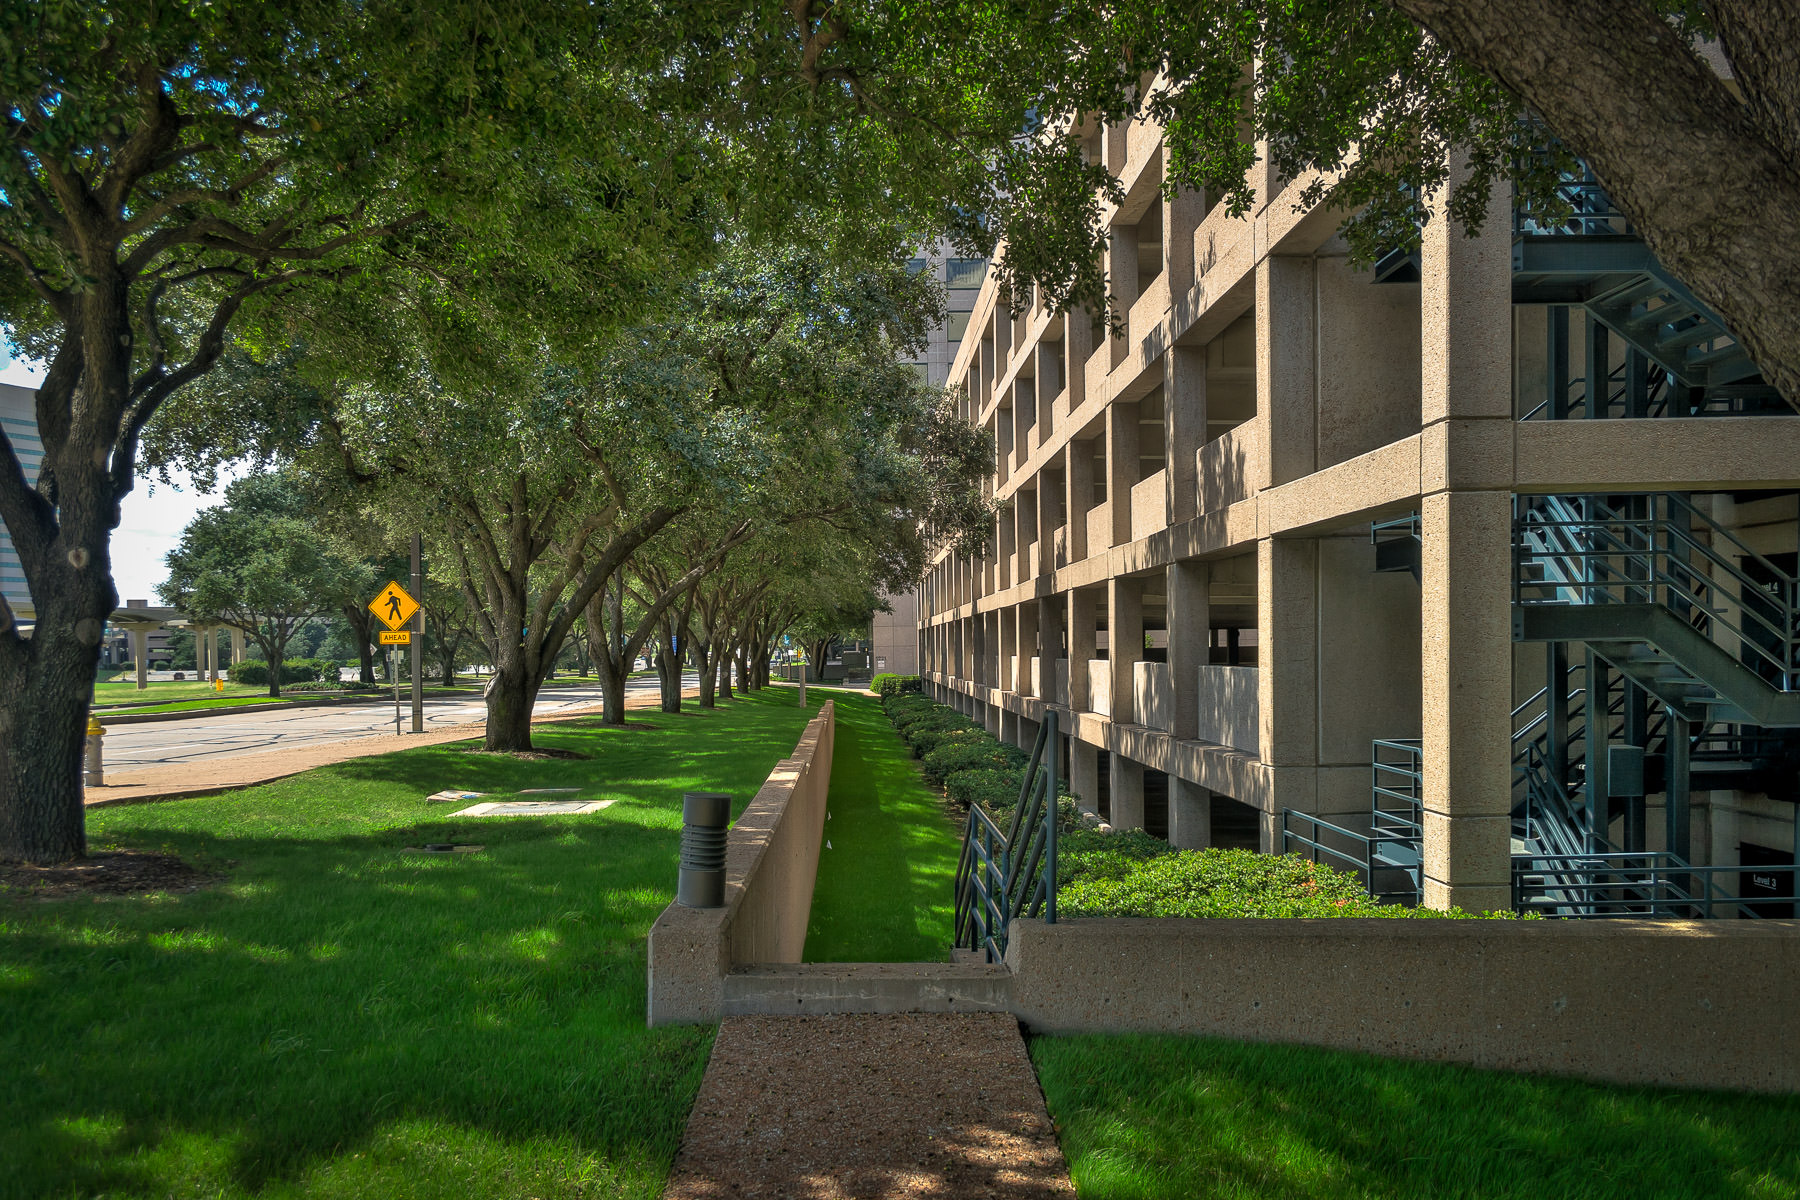 A stairway that seems to lead to nowhere between a tree-lined street and an office block in Las Colinas, Irving, Texas.